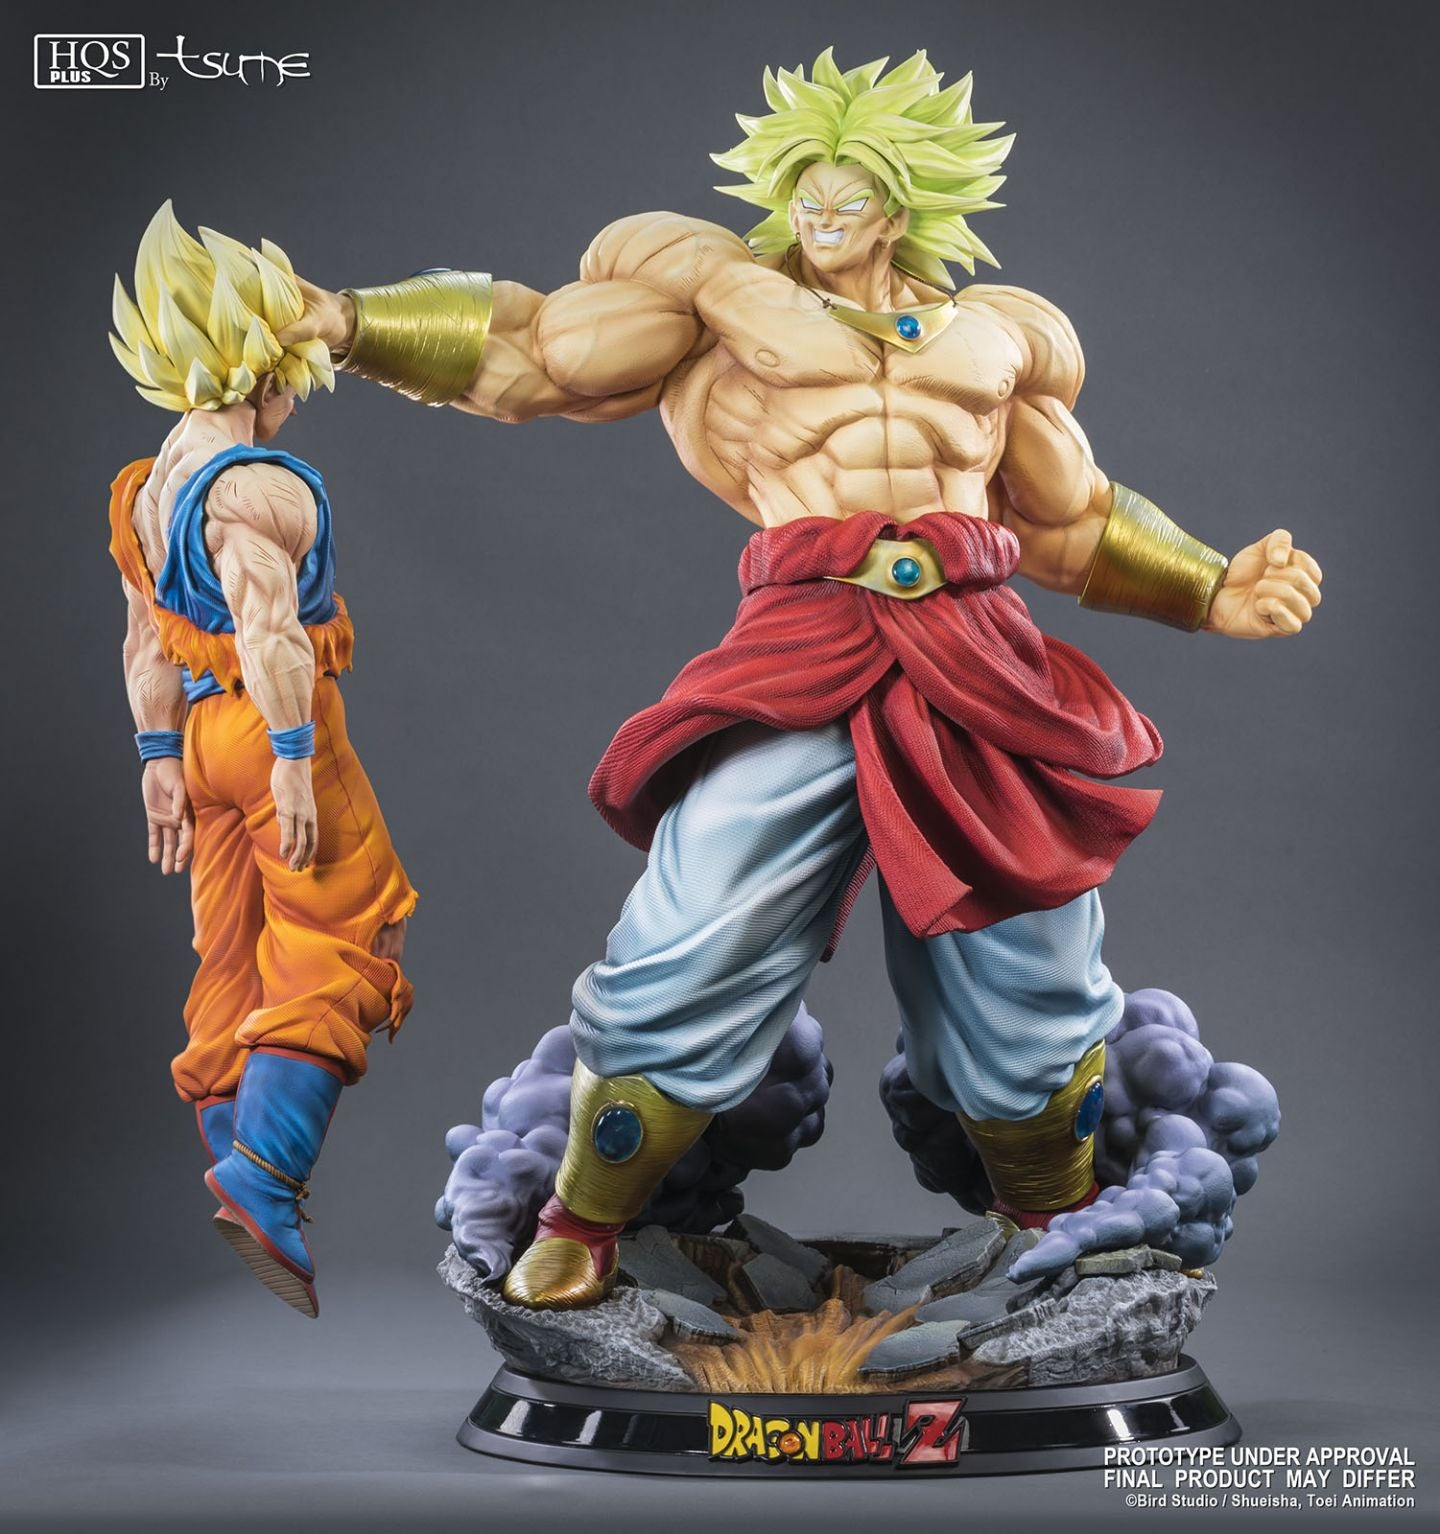 Tsume-Art - HQS+ - Dragon Ball Z - Legendary Super Saiyan Broly